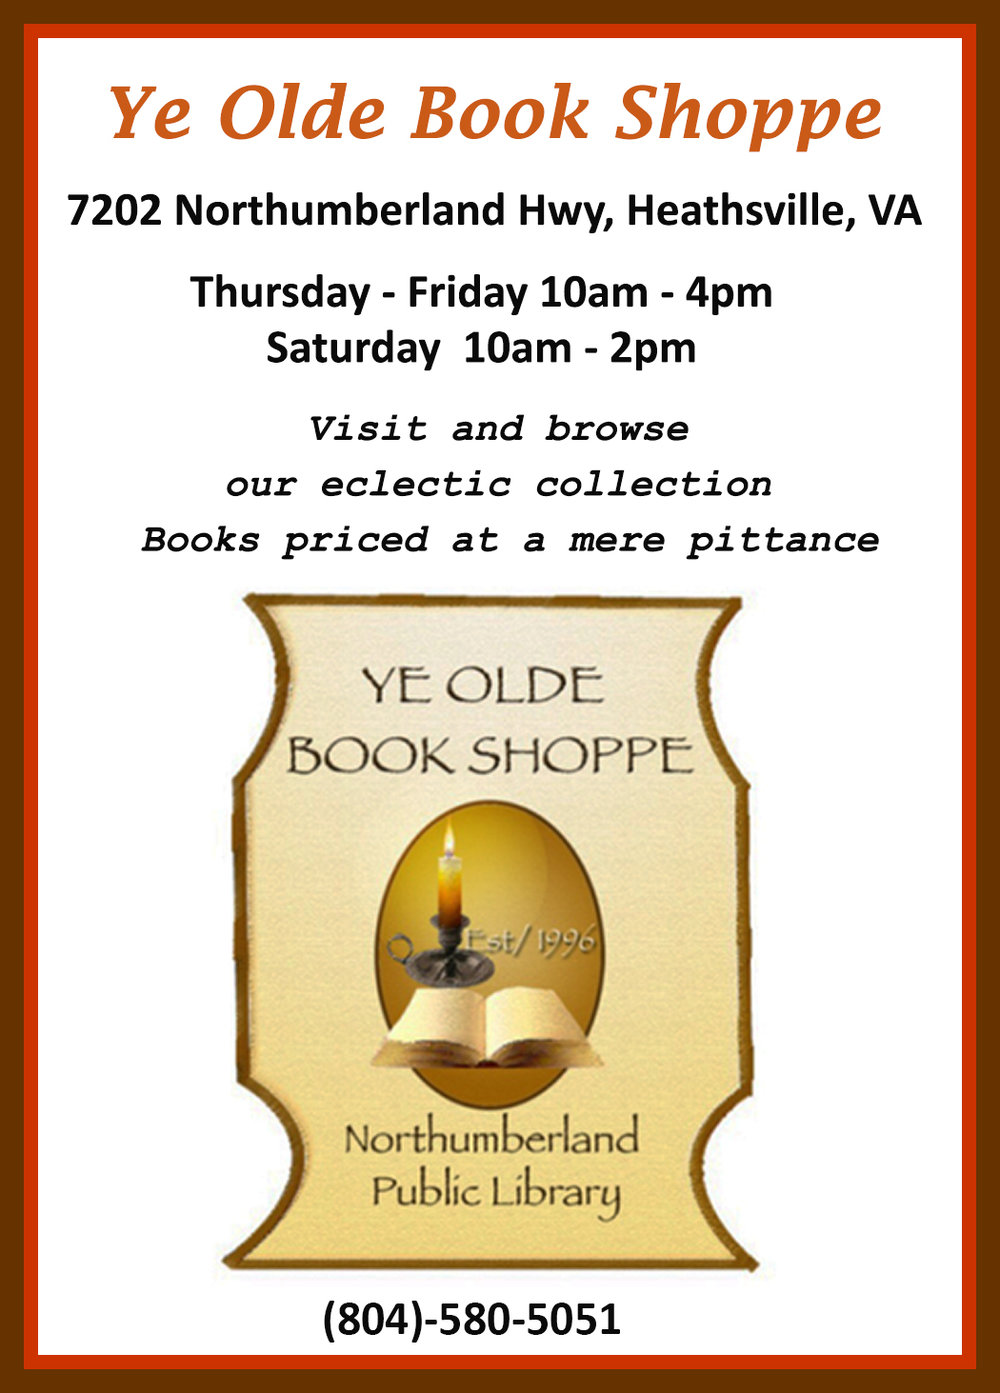 Visit Ye Olde Book Shoppe